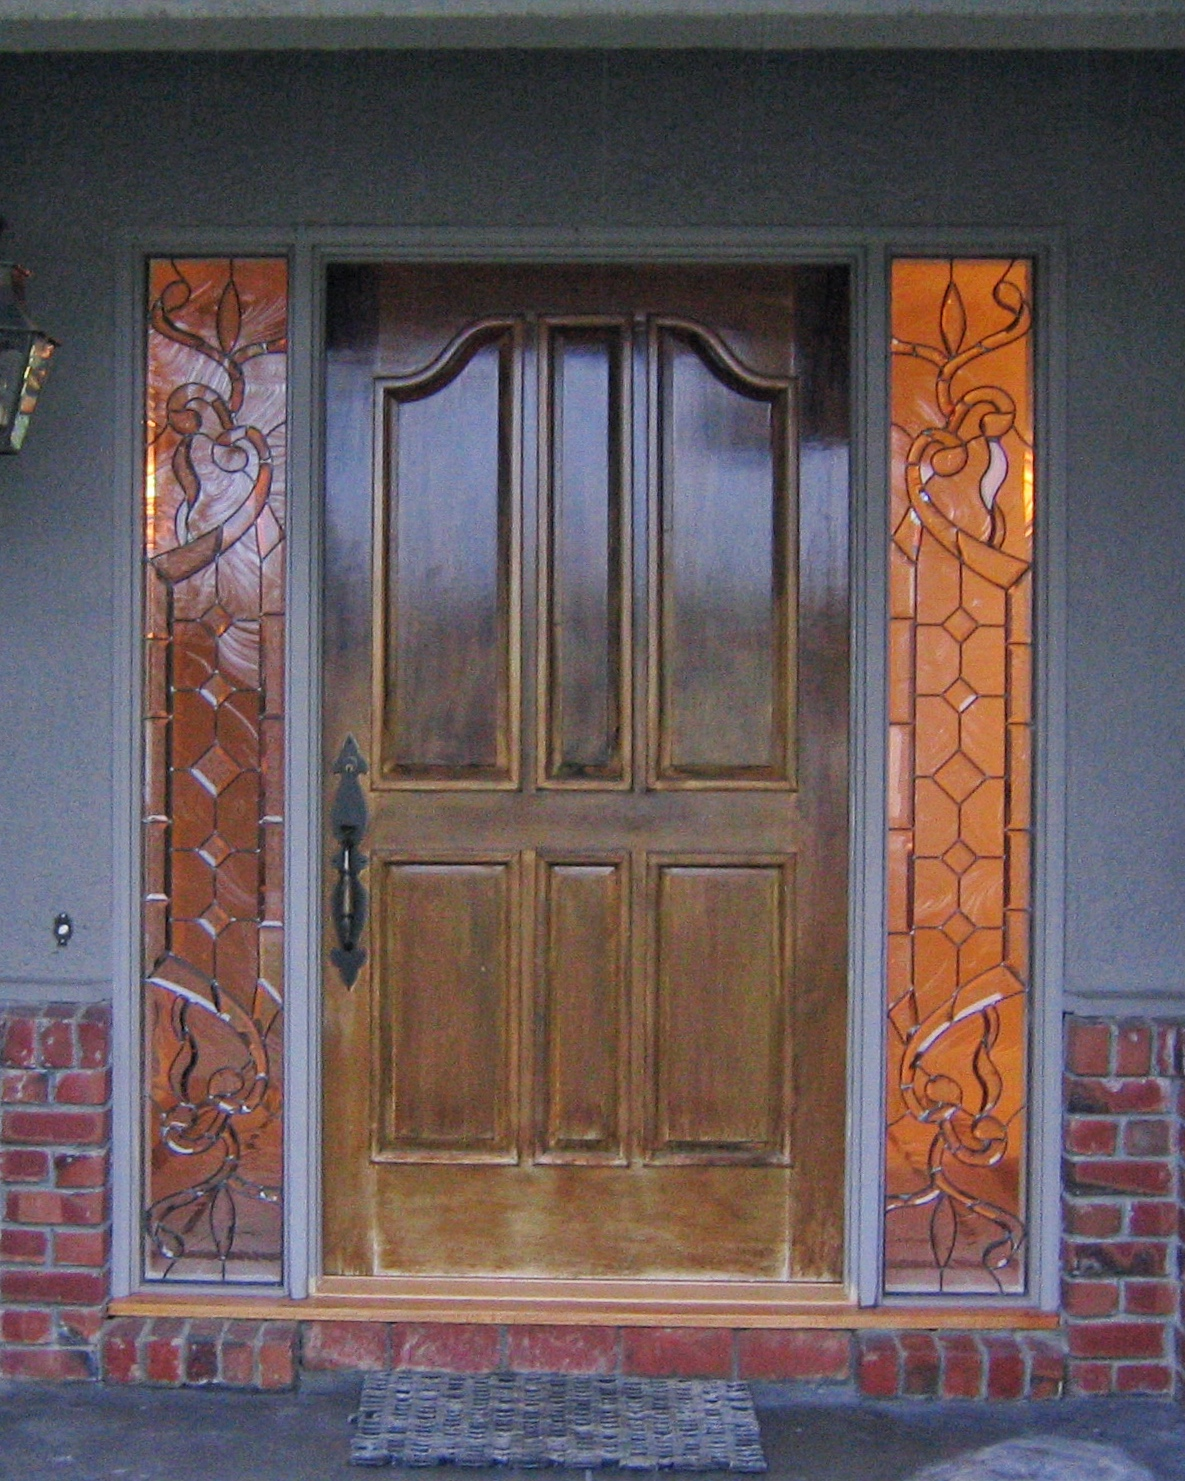 custom leaded glass sidelight inserts window custom bevels bevel cluser diamond glass curved abstract asymmetrical design legacy glass studios privacy obscure clear textured glass exterior.jpg